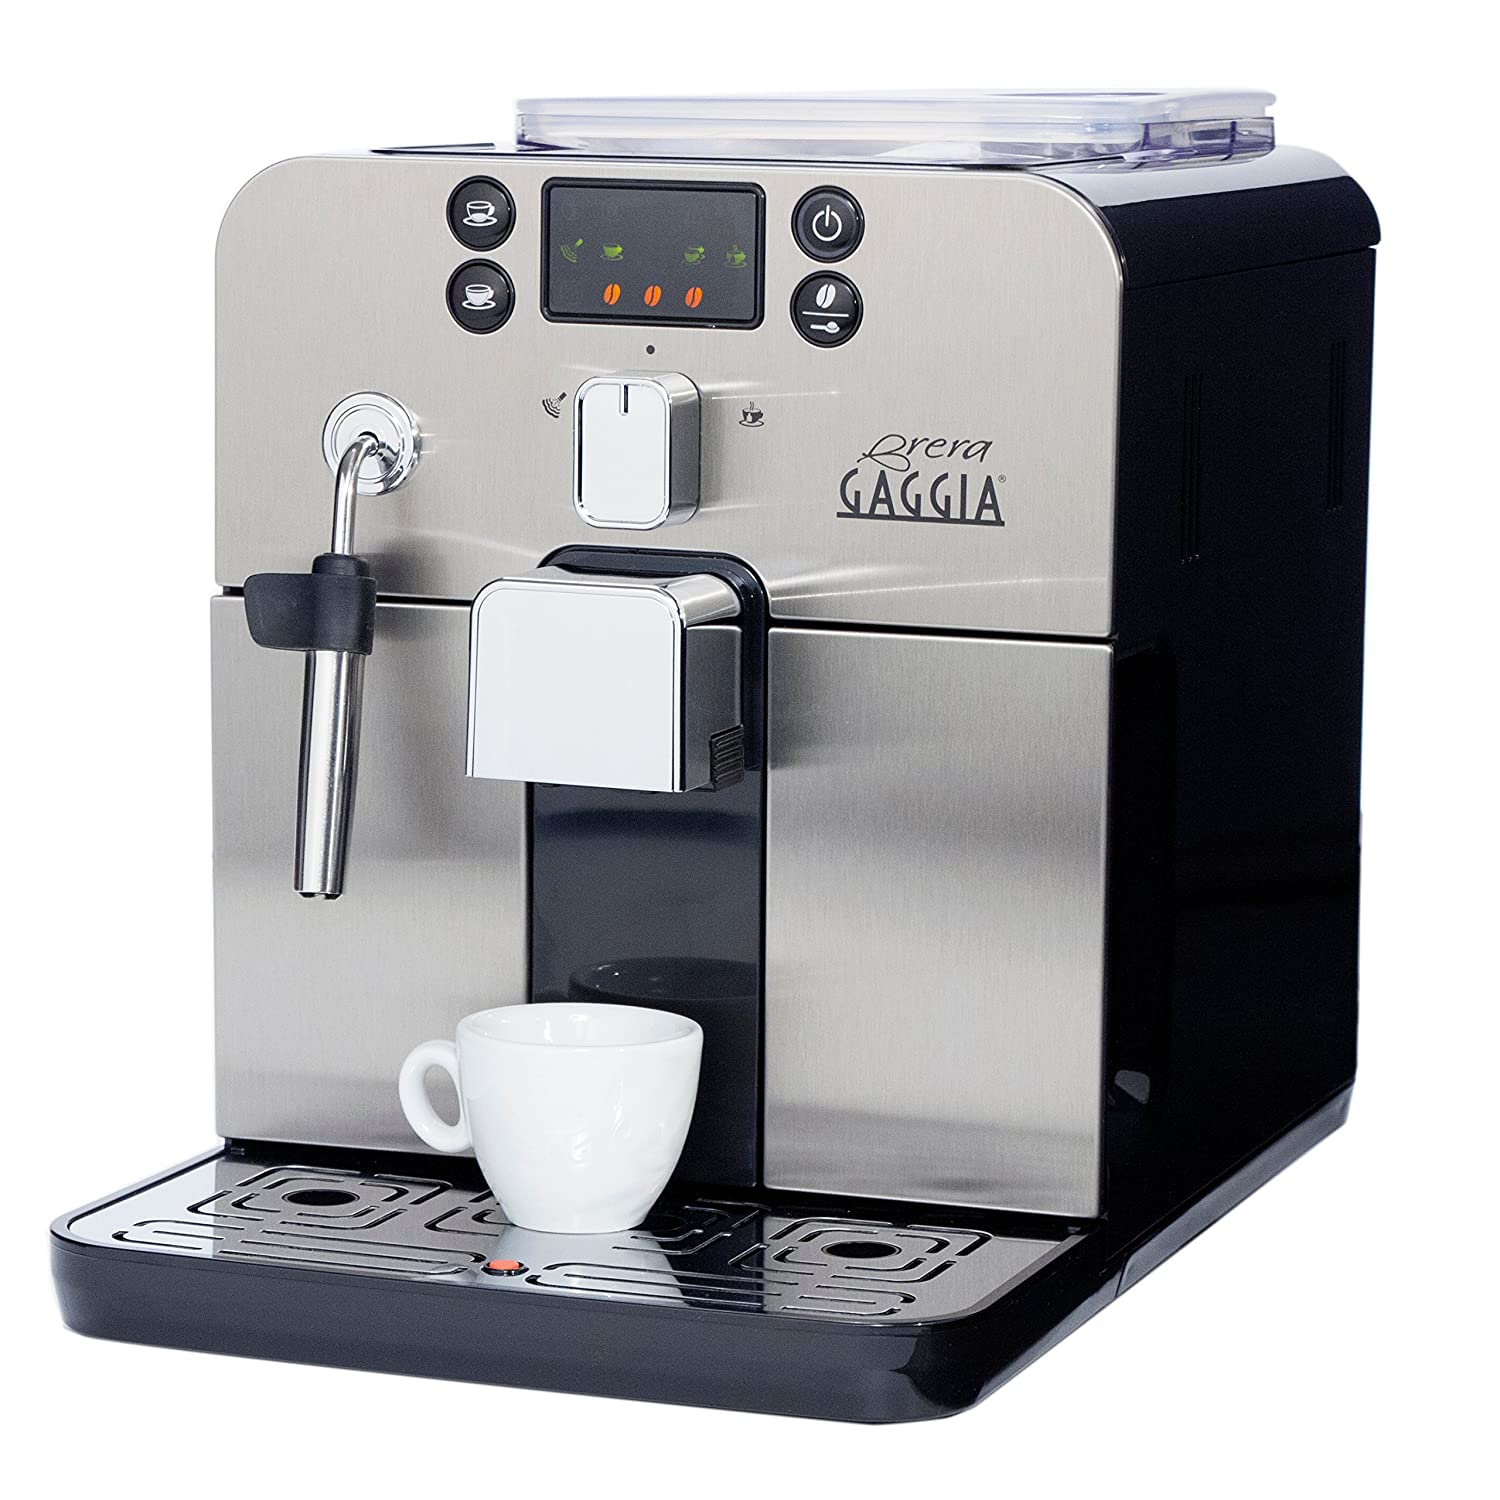 Top 10 Best Espresso Machines under $1000 (2019 Reviews & Buyer's Guide) 9